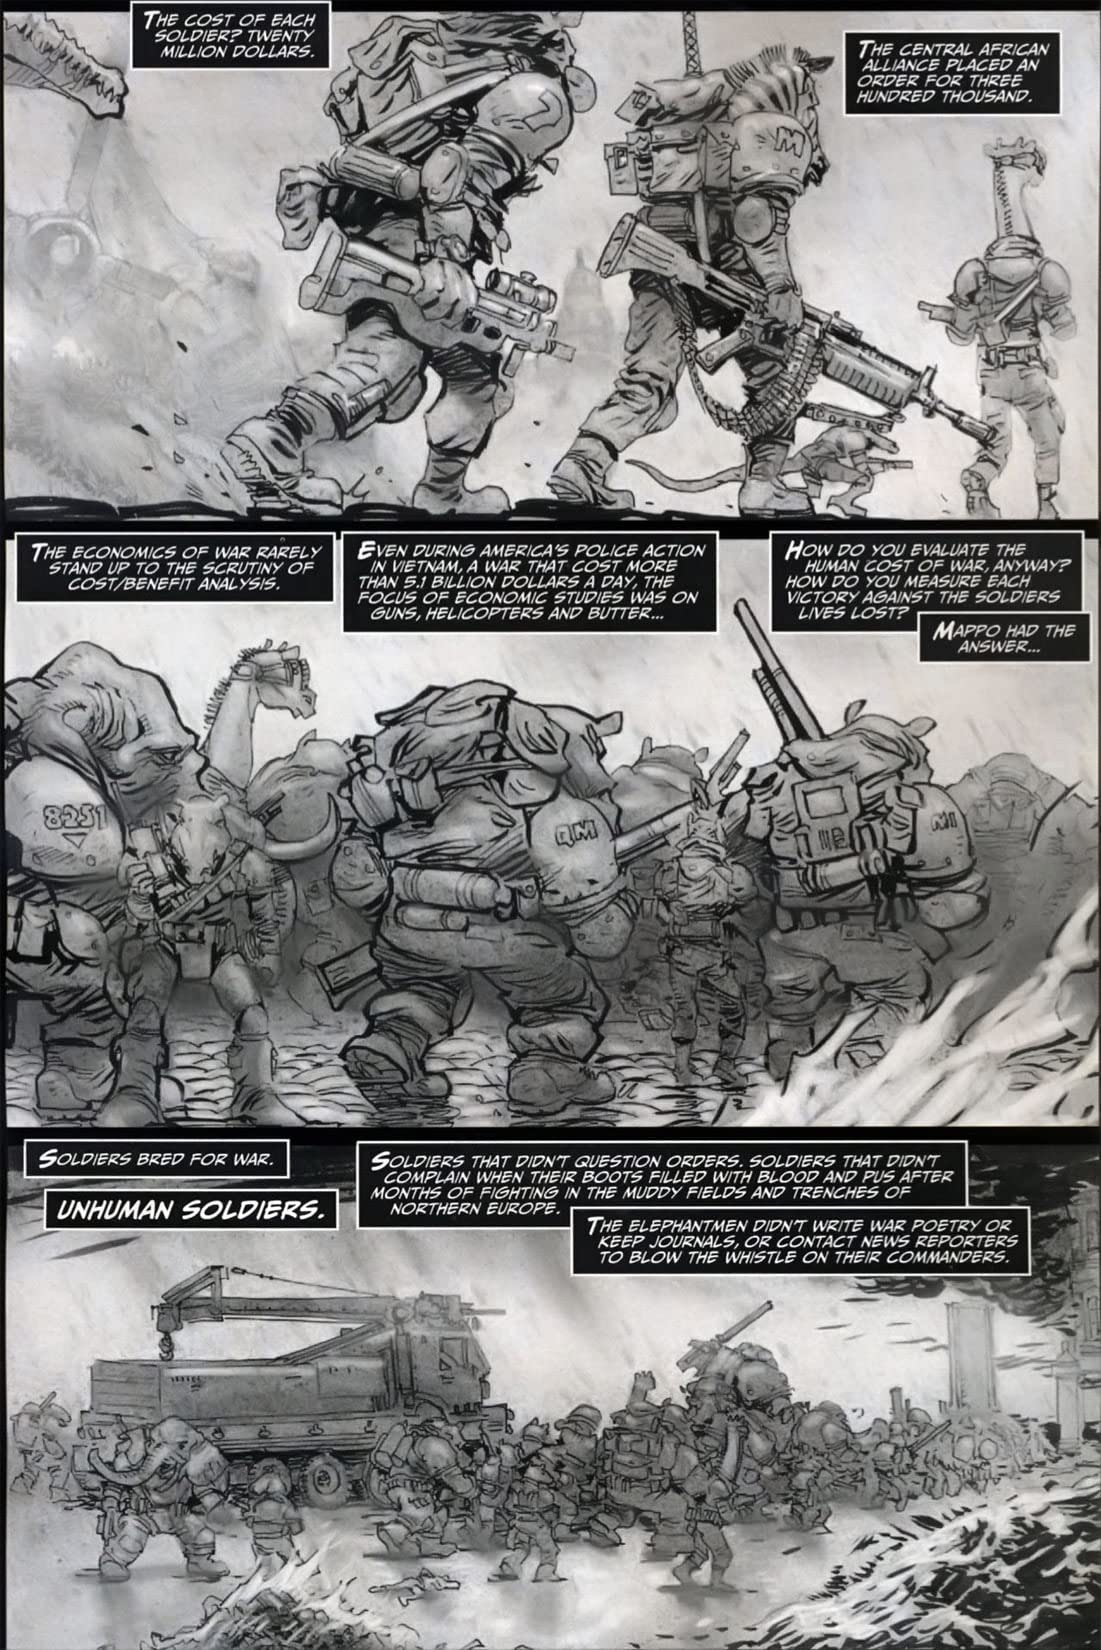 Elephantmen: War Toys #3 (of 3)